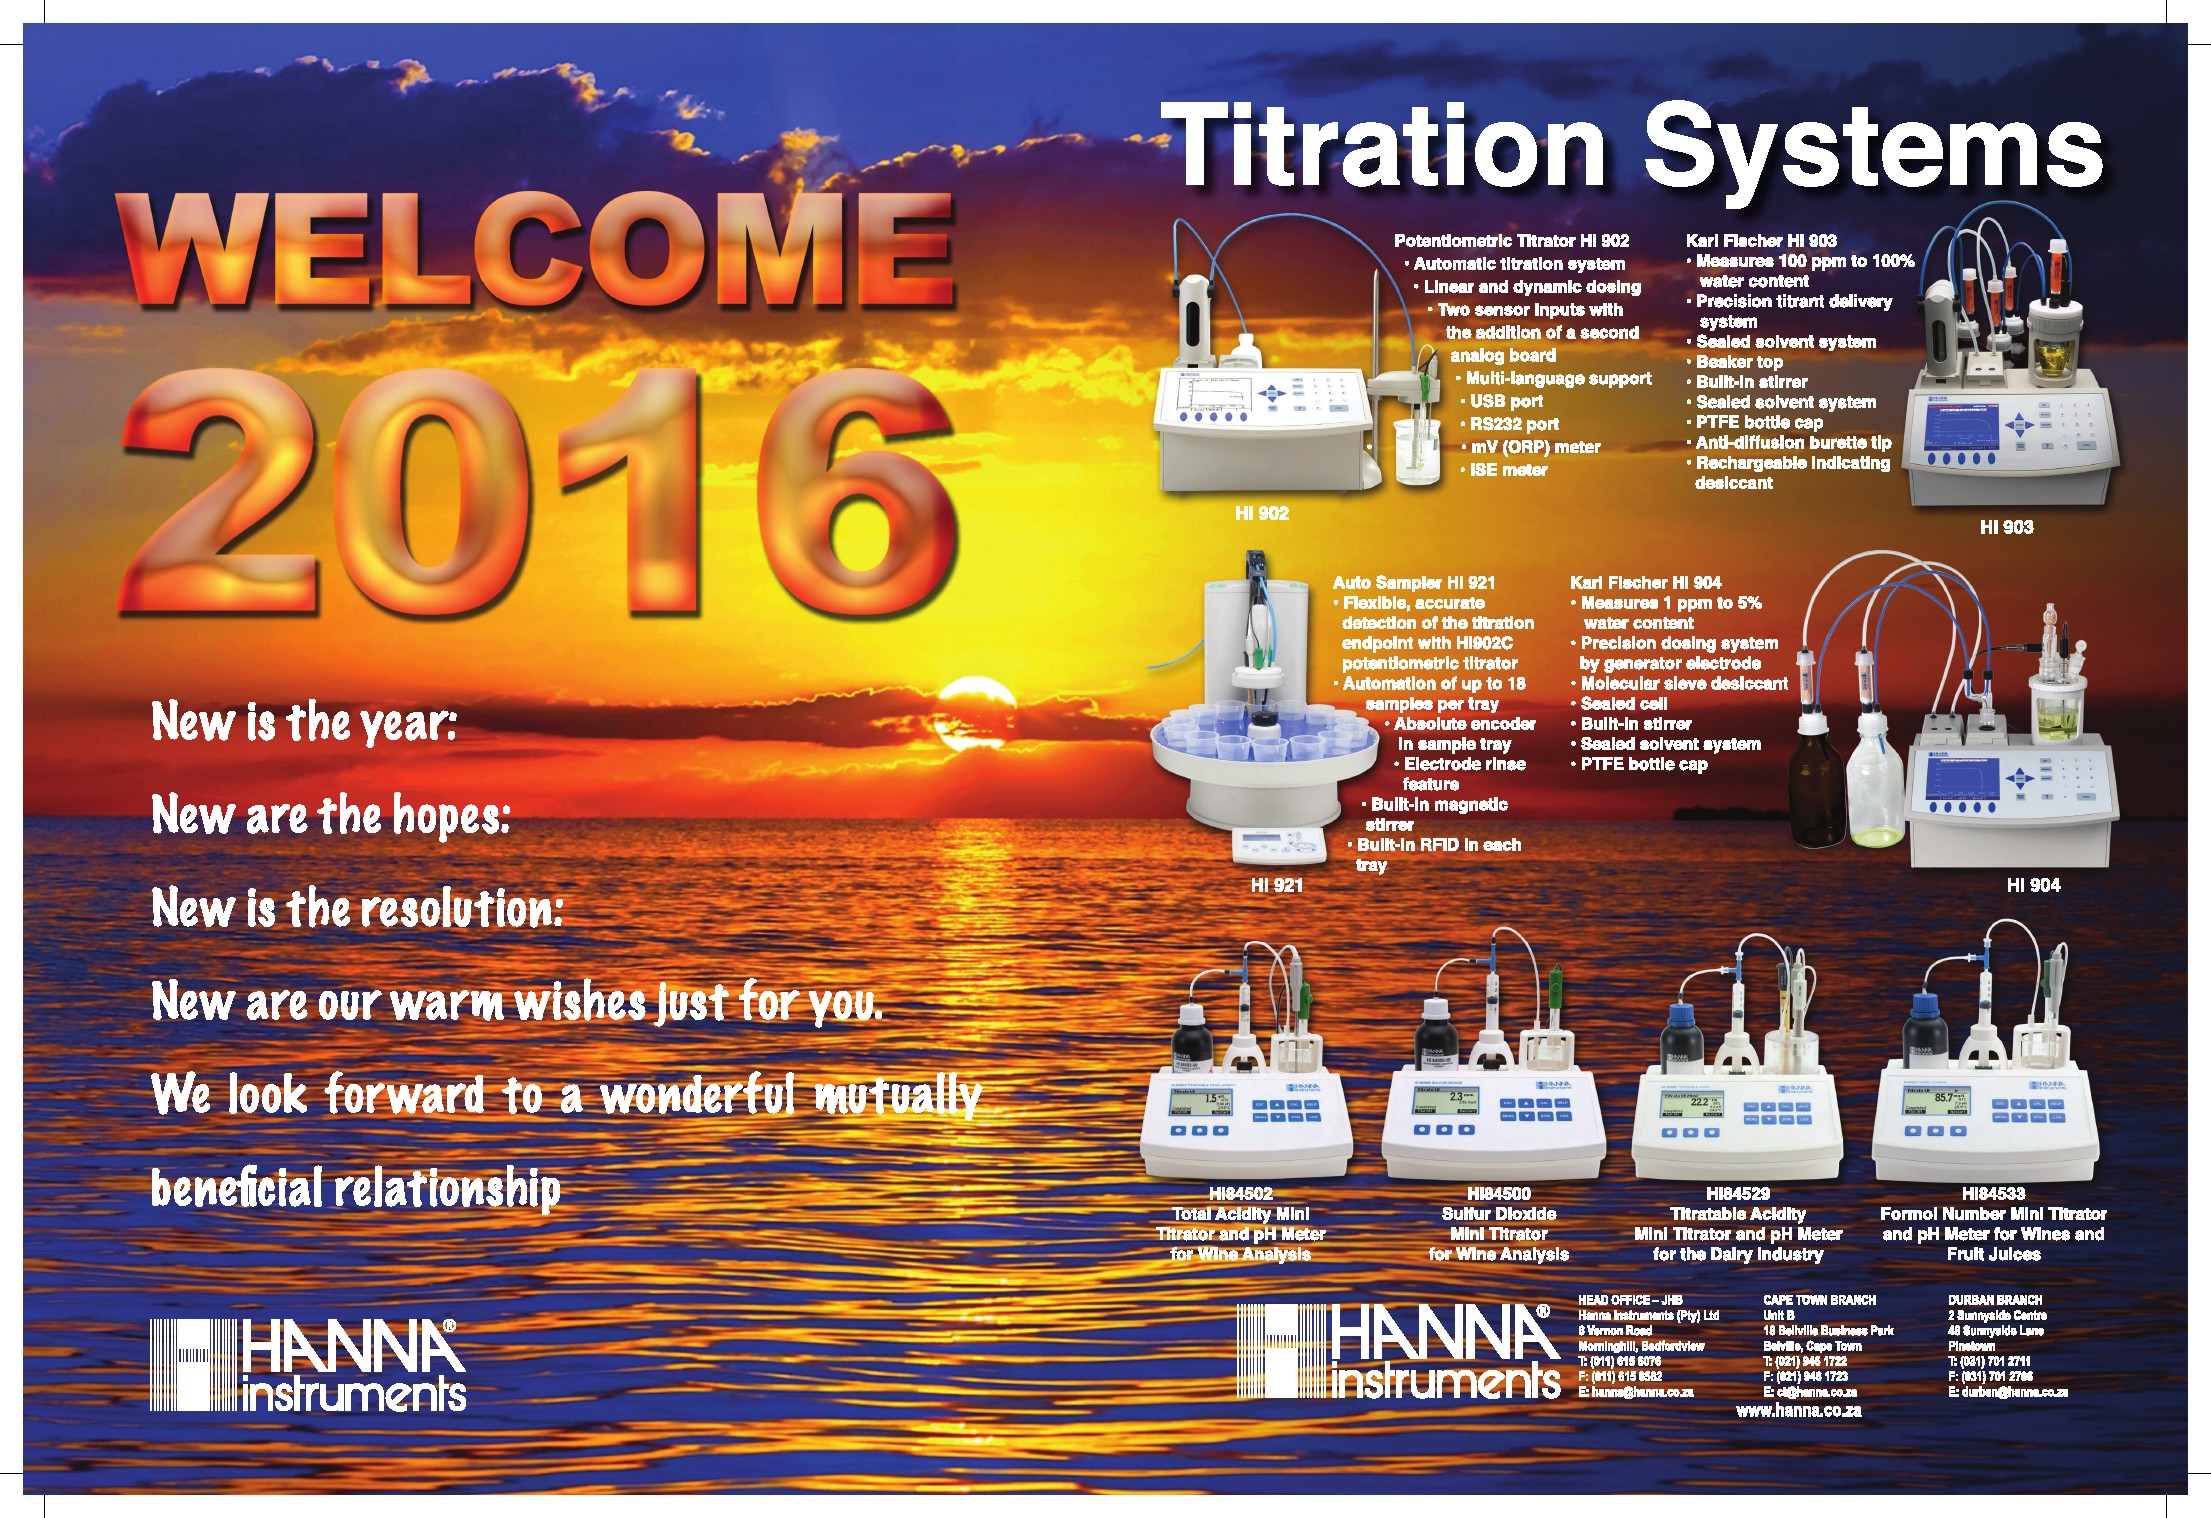 Titration-Systems-2016